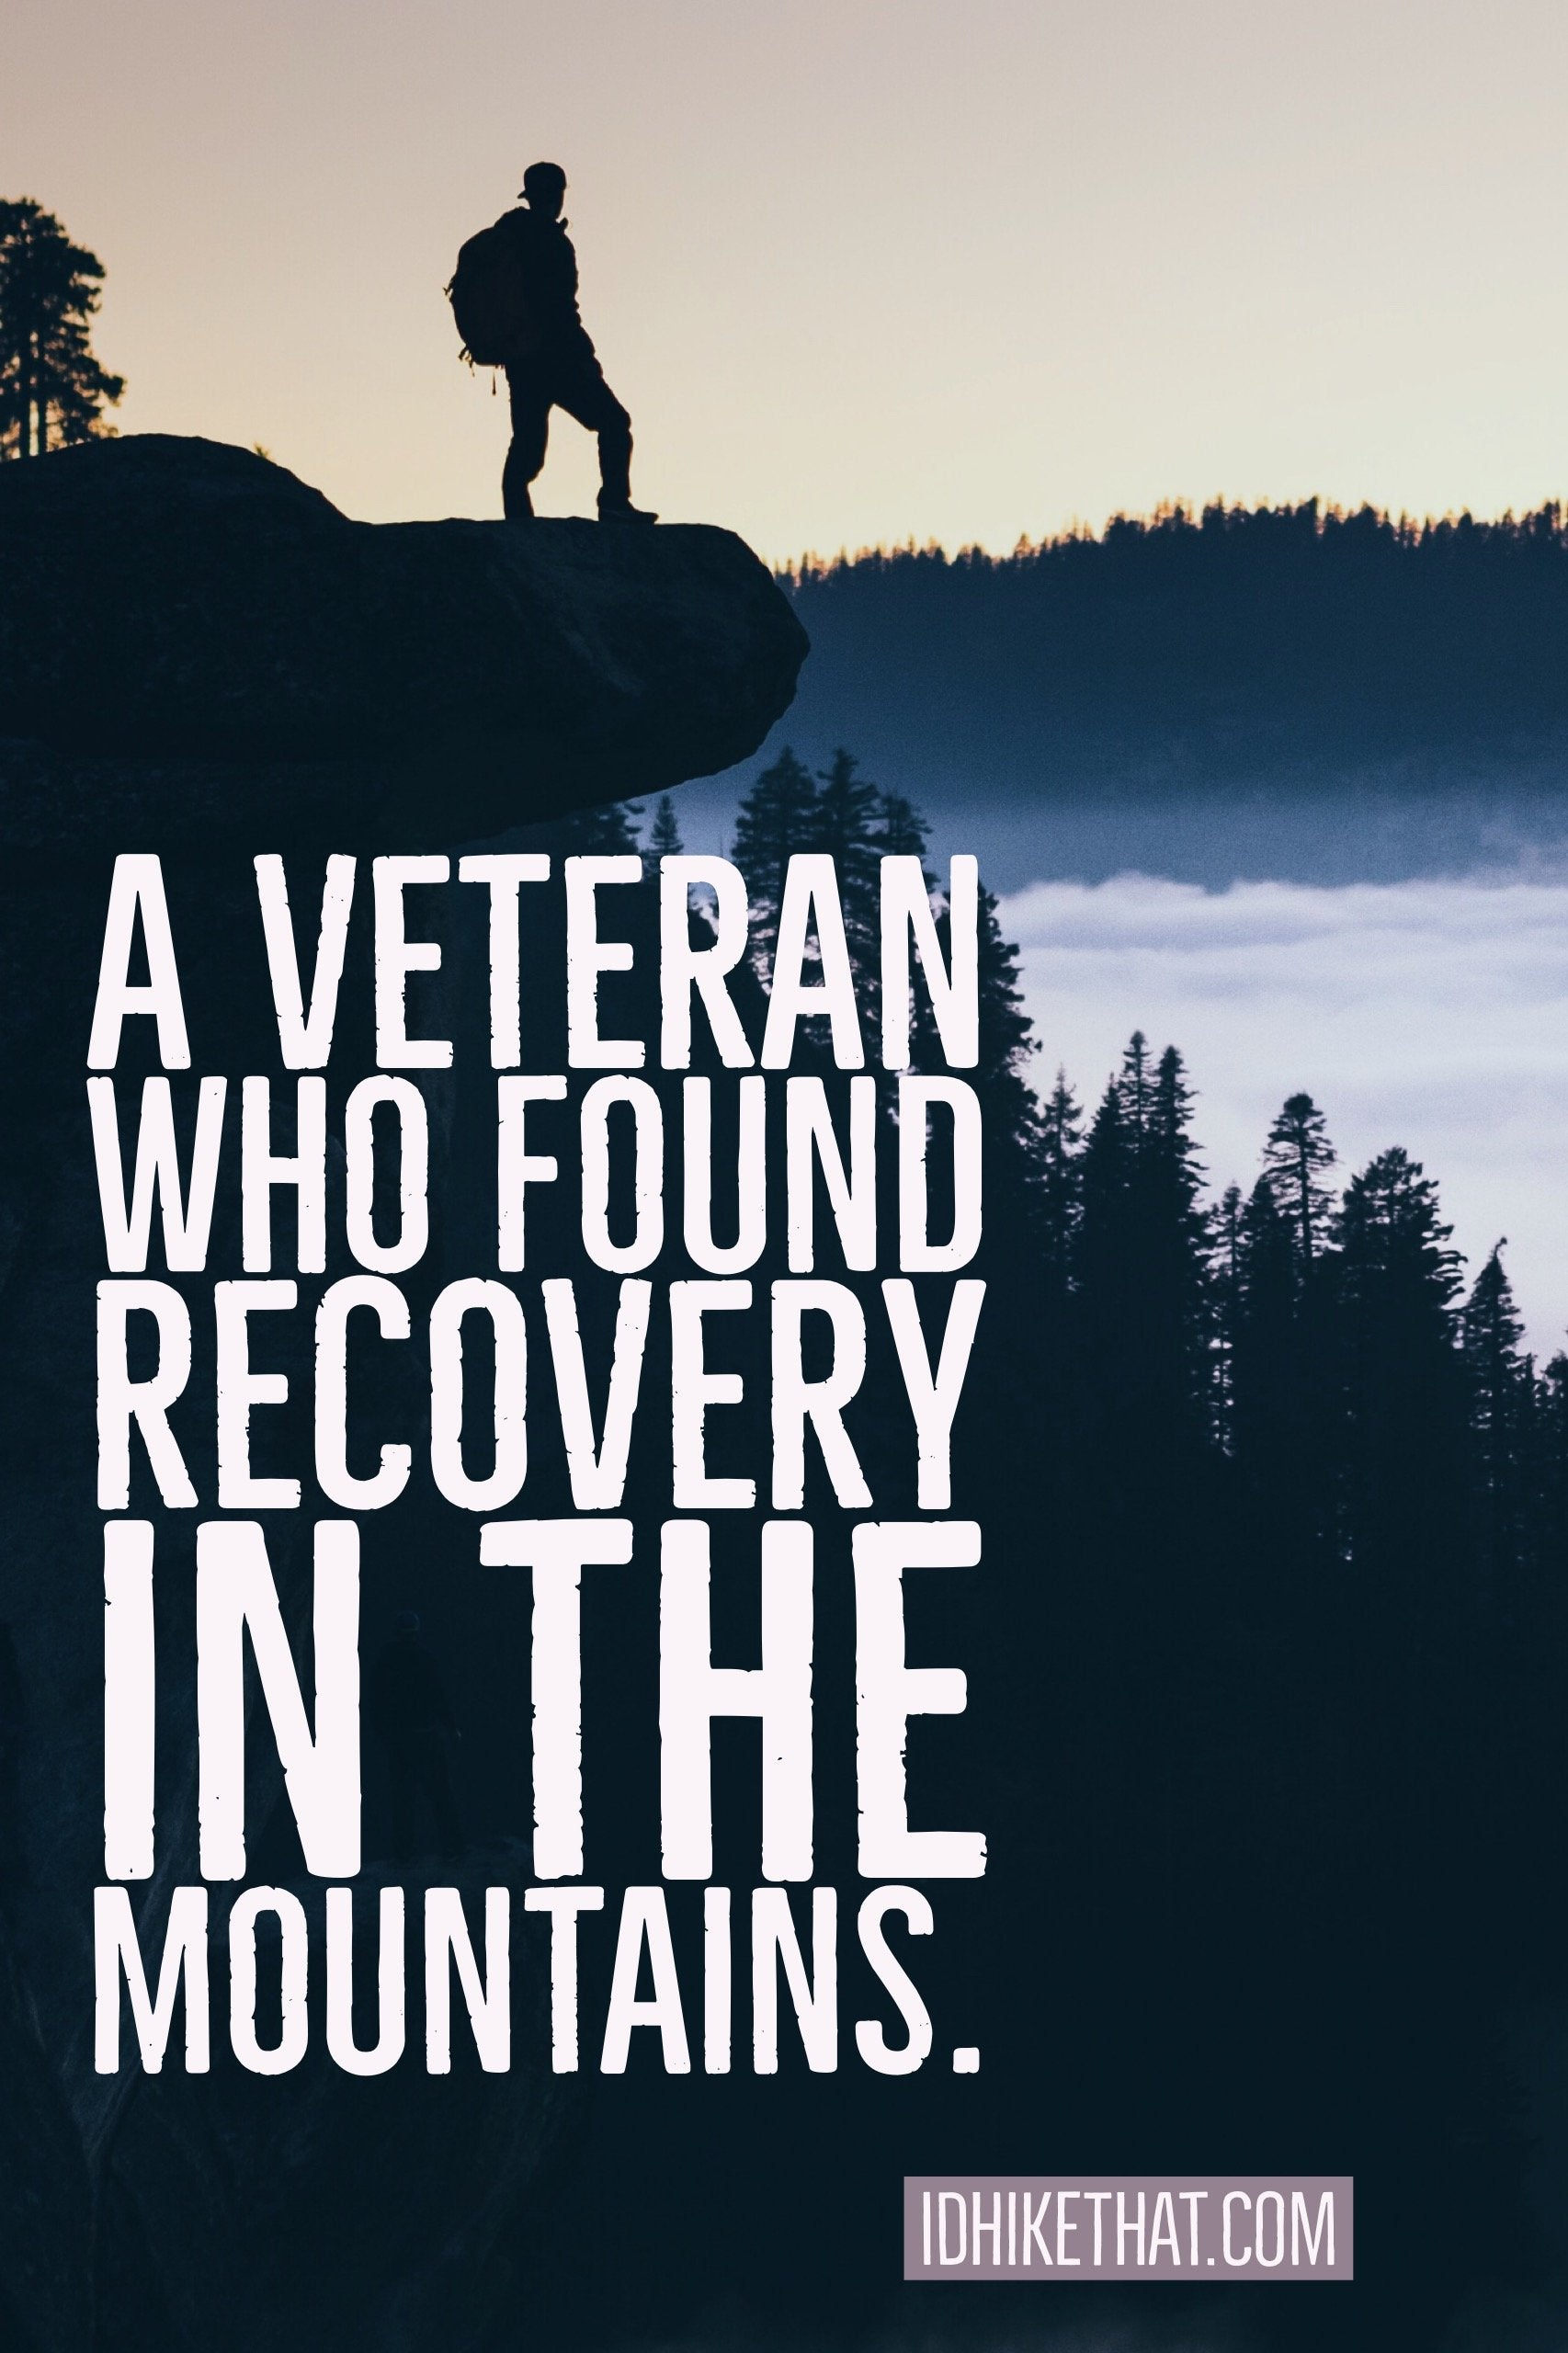 A veteran who found recovery in the mountains. This is a personal story of healing. Visit idhikethat.com to read this inspiring story.